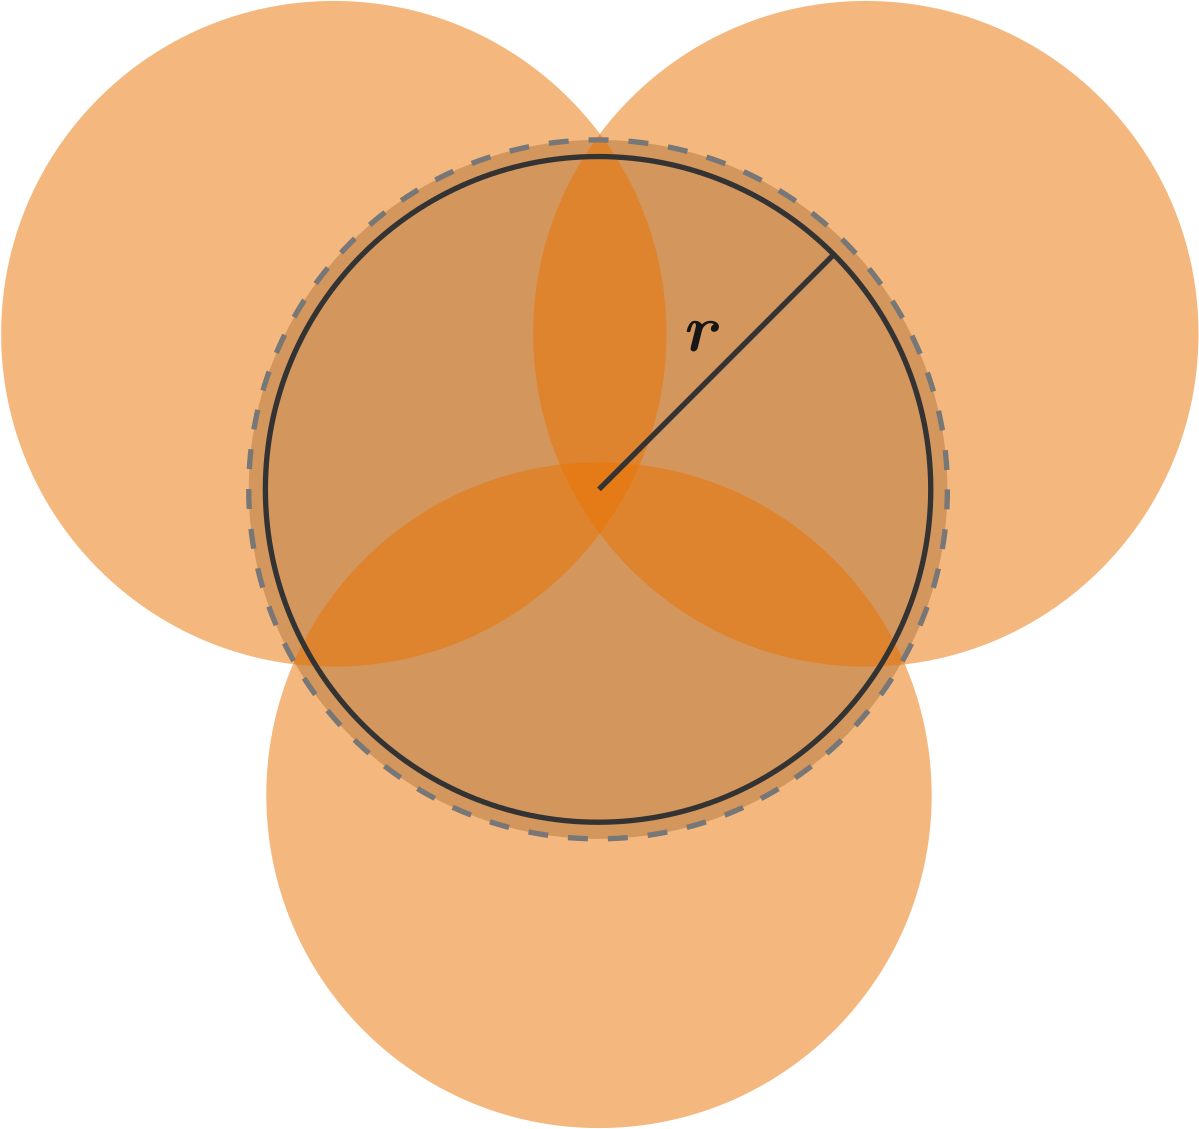 The 3 overlapping orange circles have the same radius as the black circle.  It takes 3 of these circles to cover the slightly larger dashed circle.